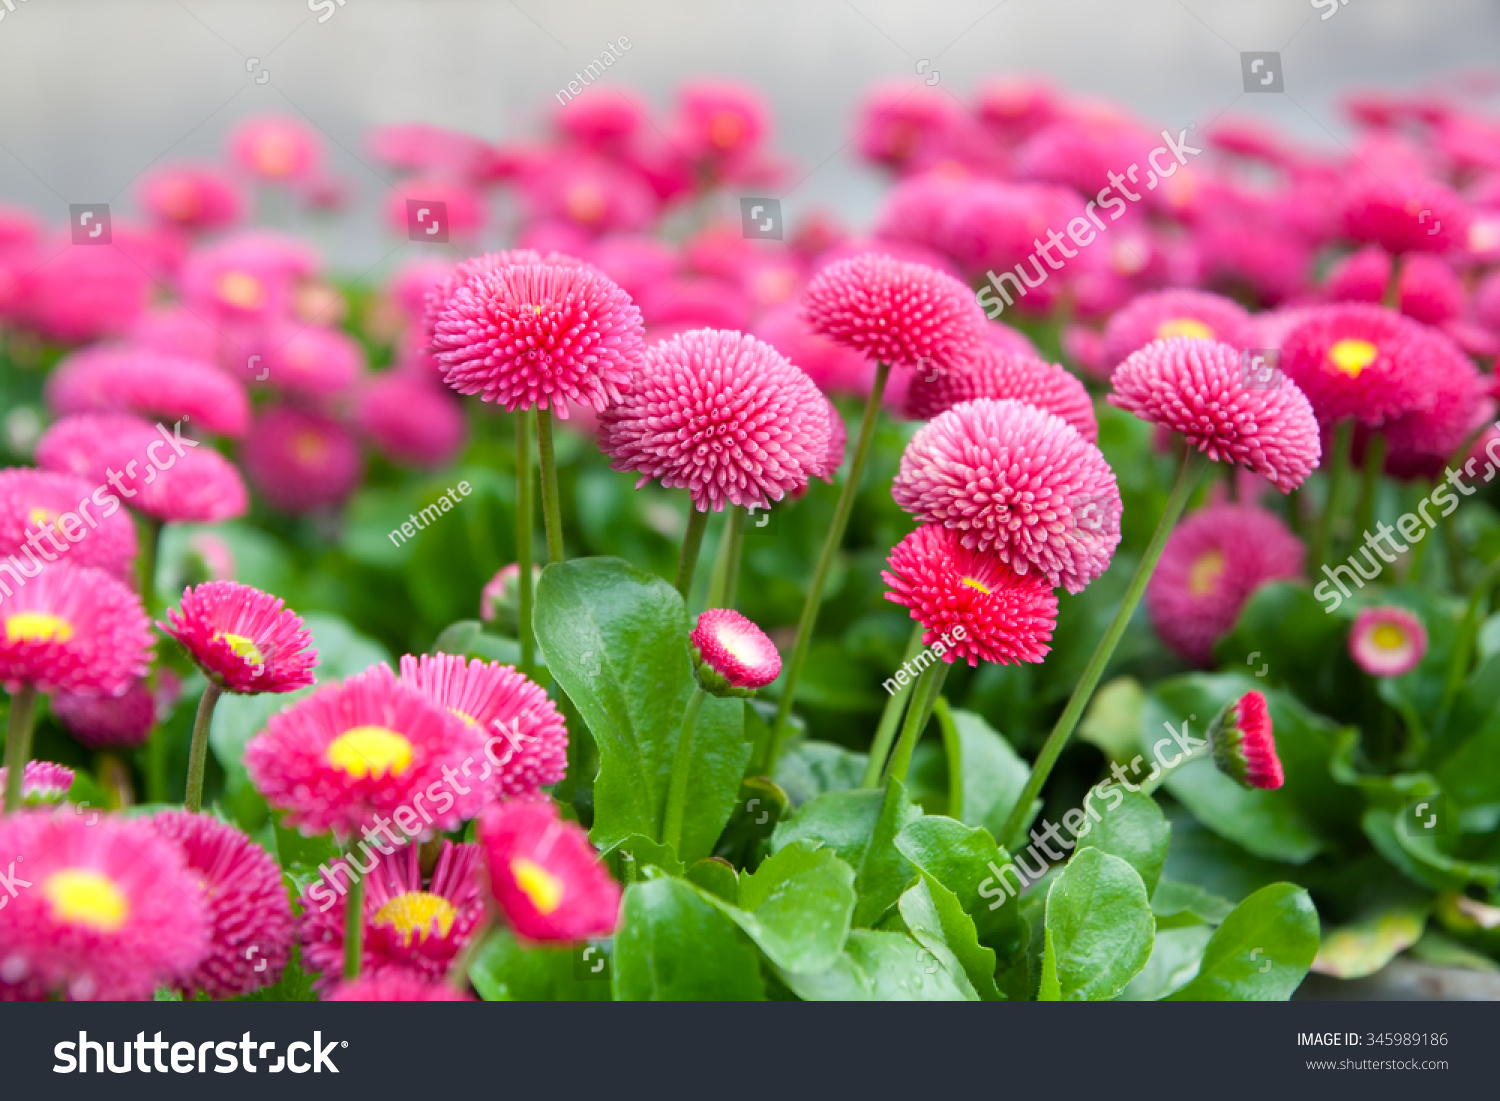 Pink asters yellow core growing flowerbed stock photo edit now pink asters with yellow core growing in flowerbed petals of this flower look like small izmirmasajfo